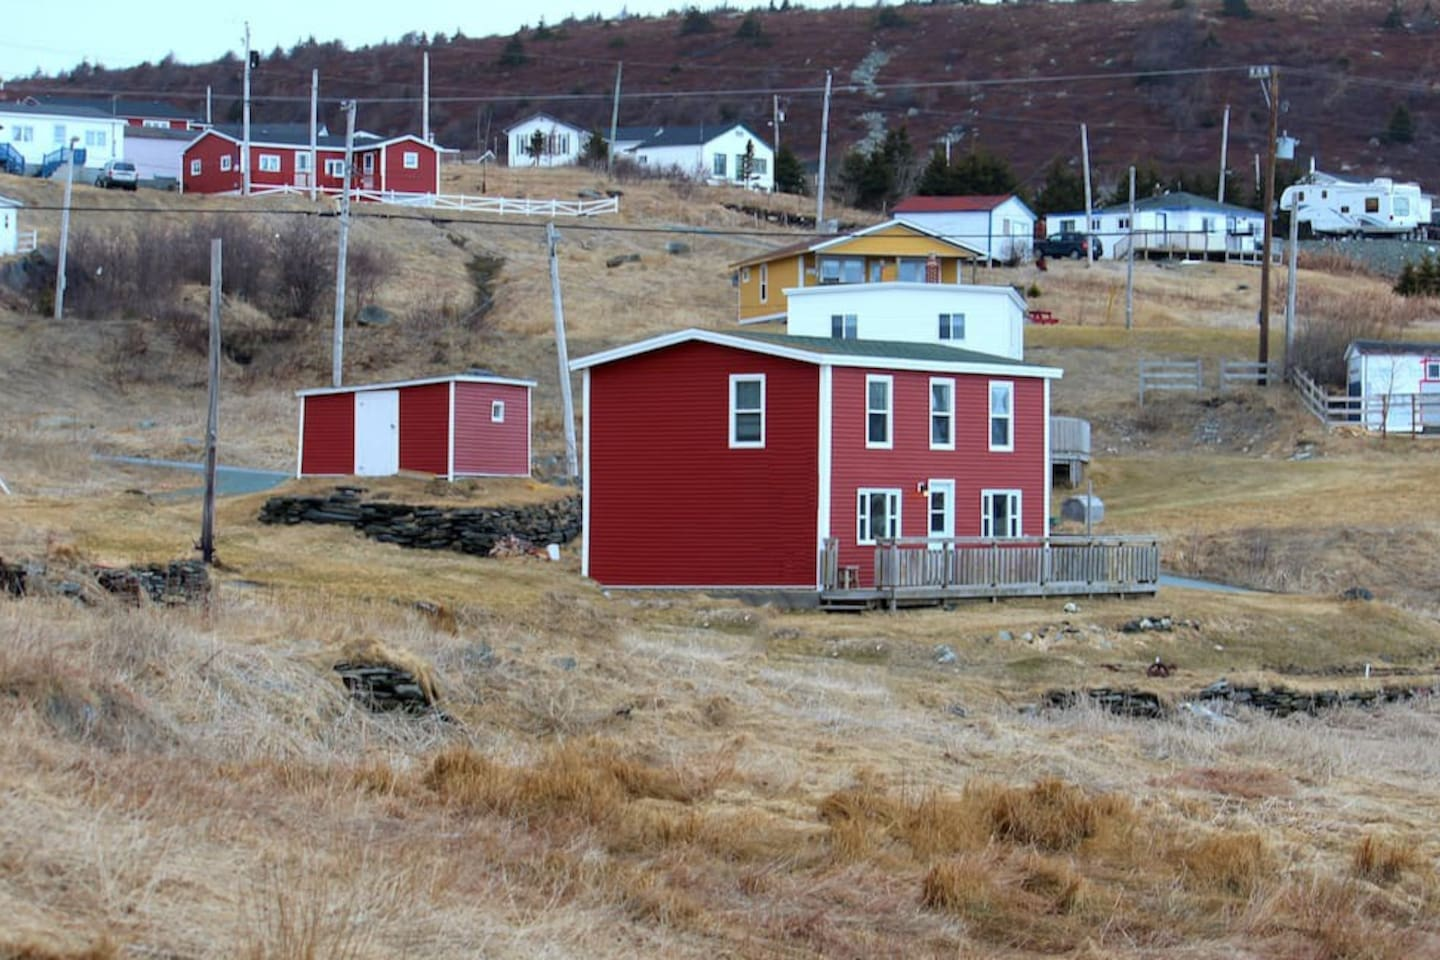 The Valley House in Ferryland, Newfoundland and Labrador, Canada